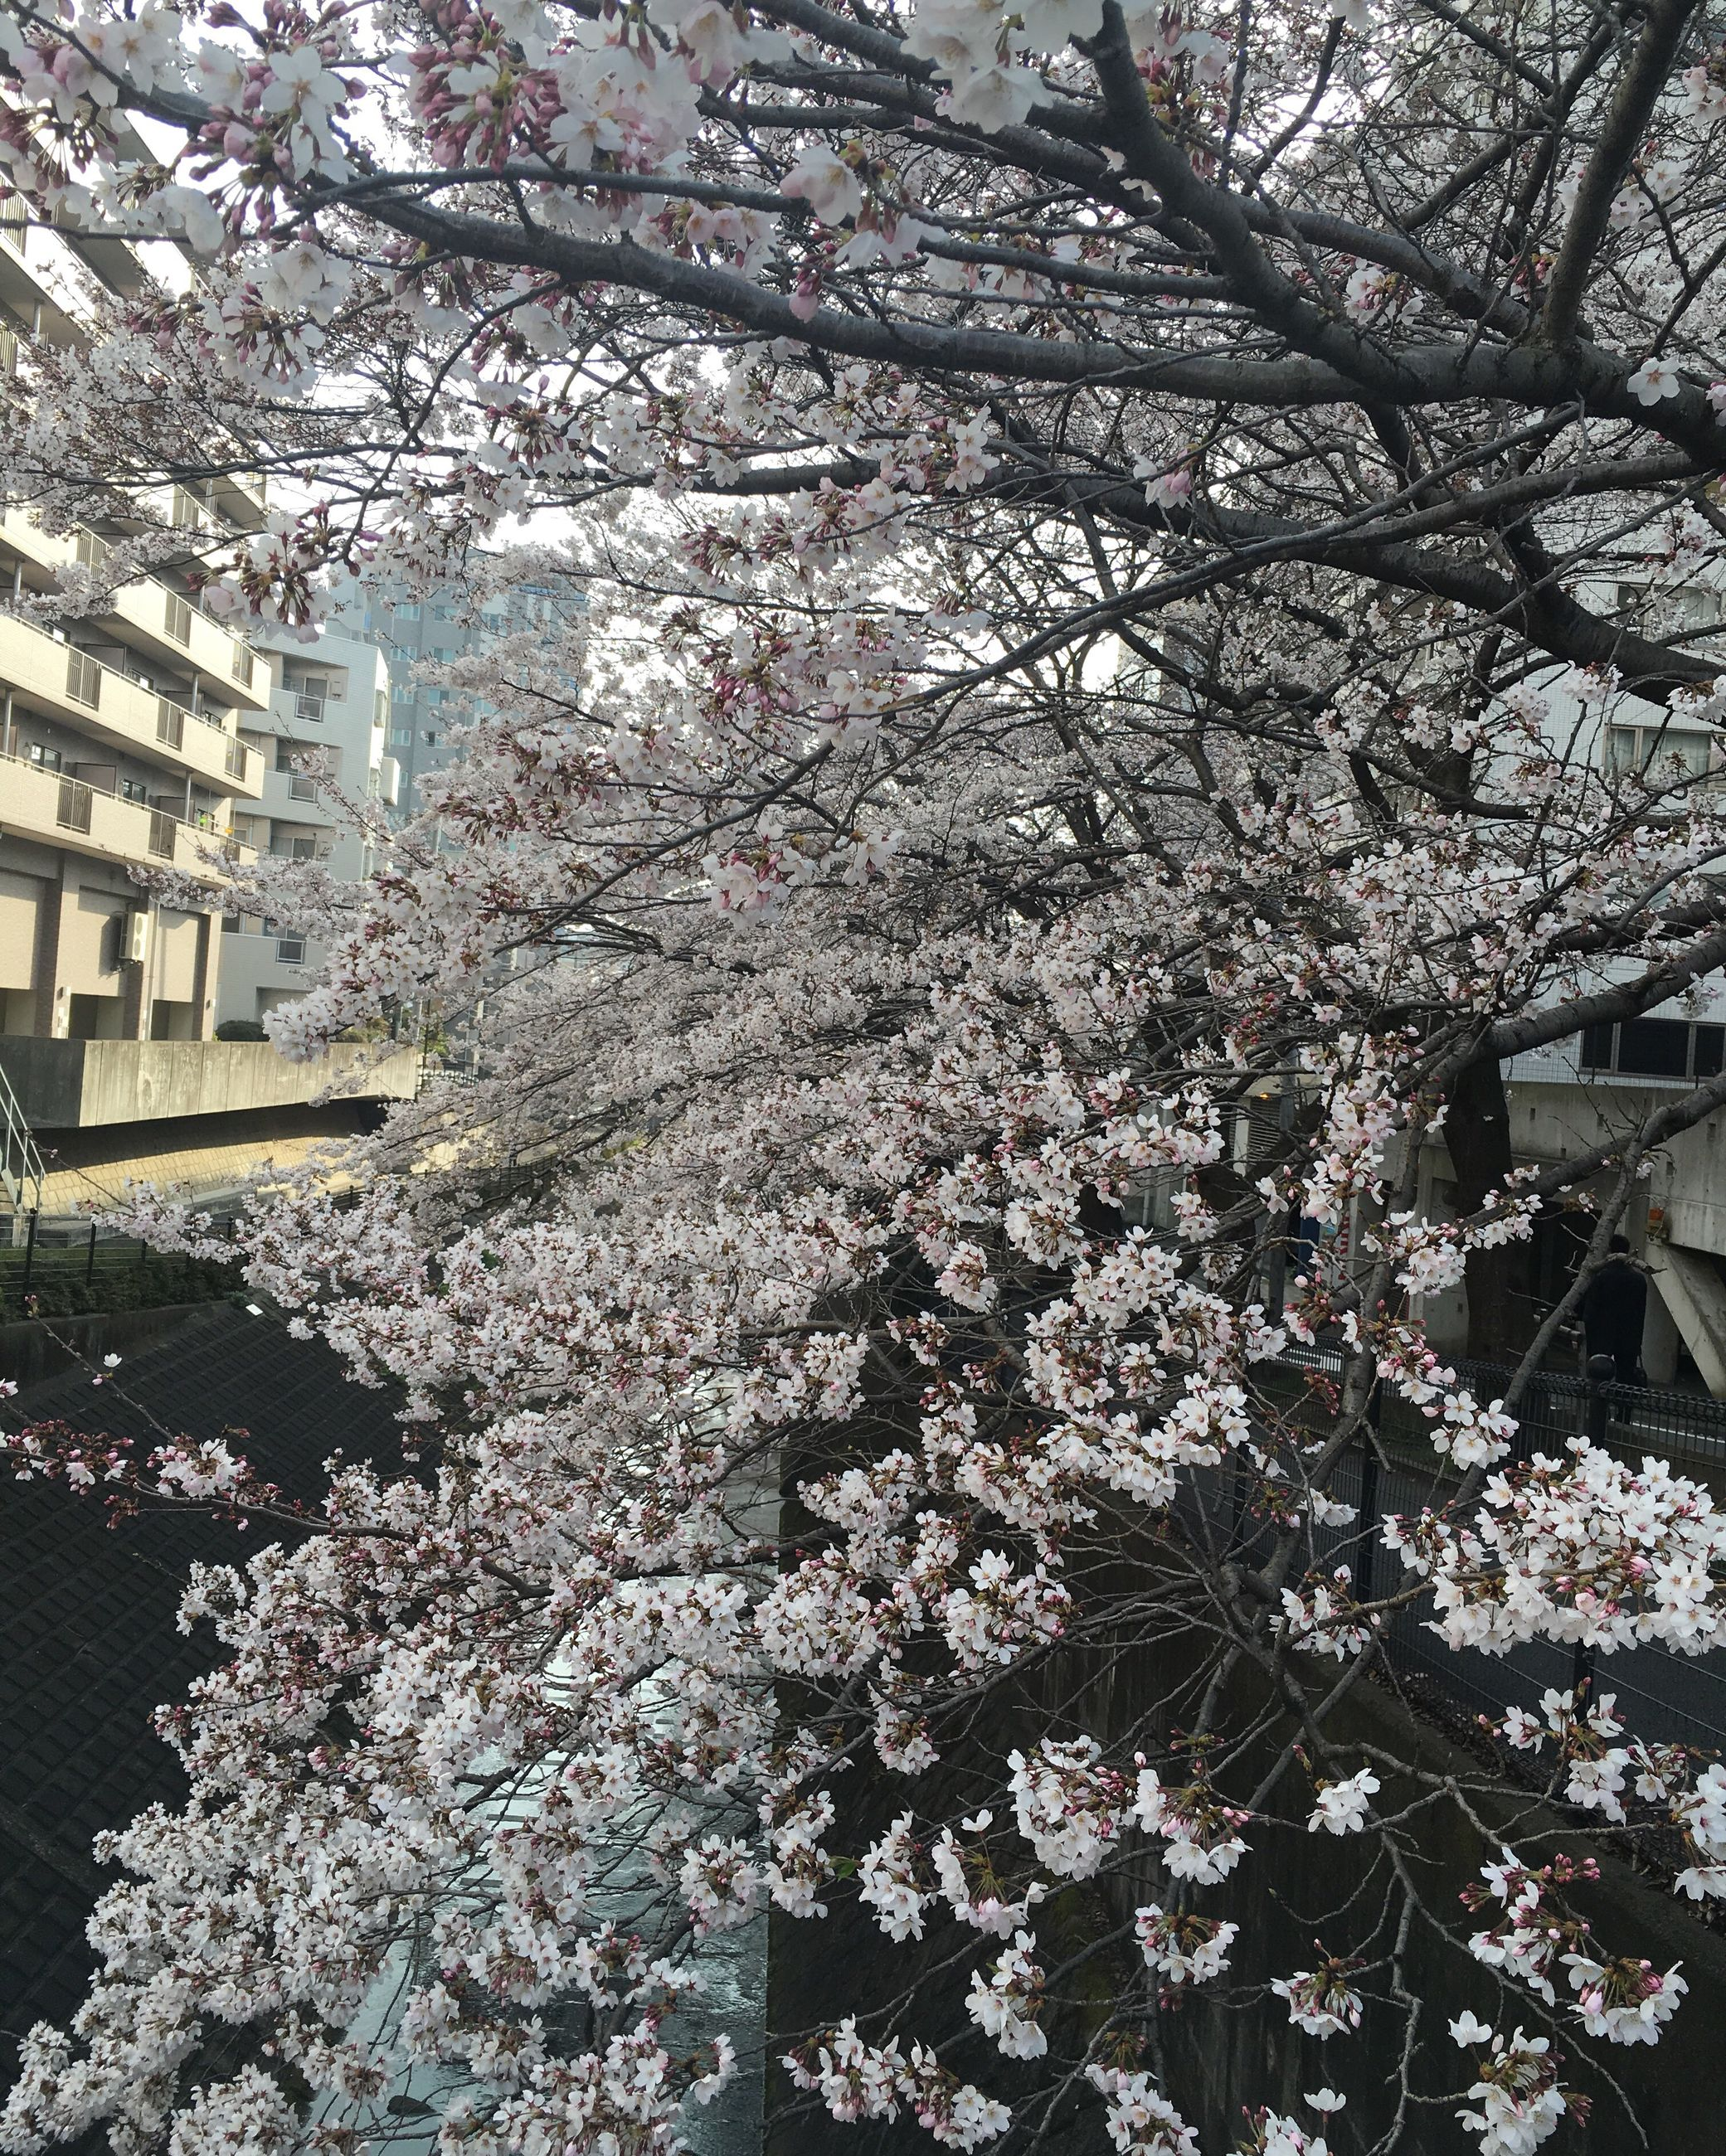 tree, branch, flower, growth, low angle view, cherry blossom, nature, building exterior, cherry tree, blossom, freshness, beauty in nature, built structure, fragility, architecture, season, in bloom, outdoors, blooming, day